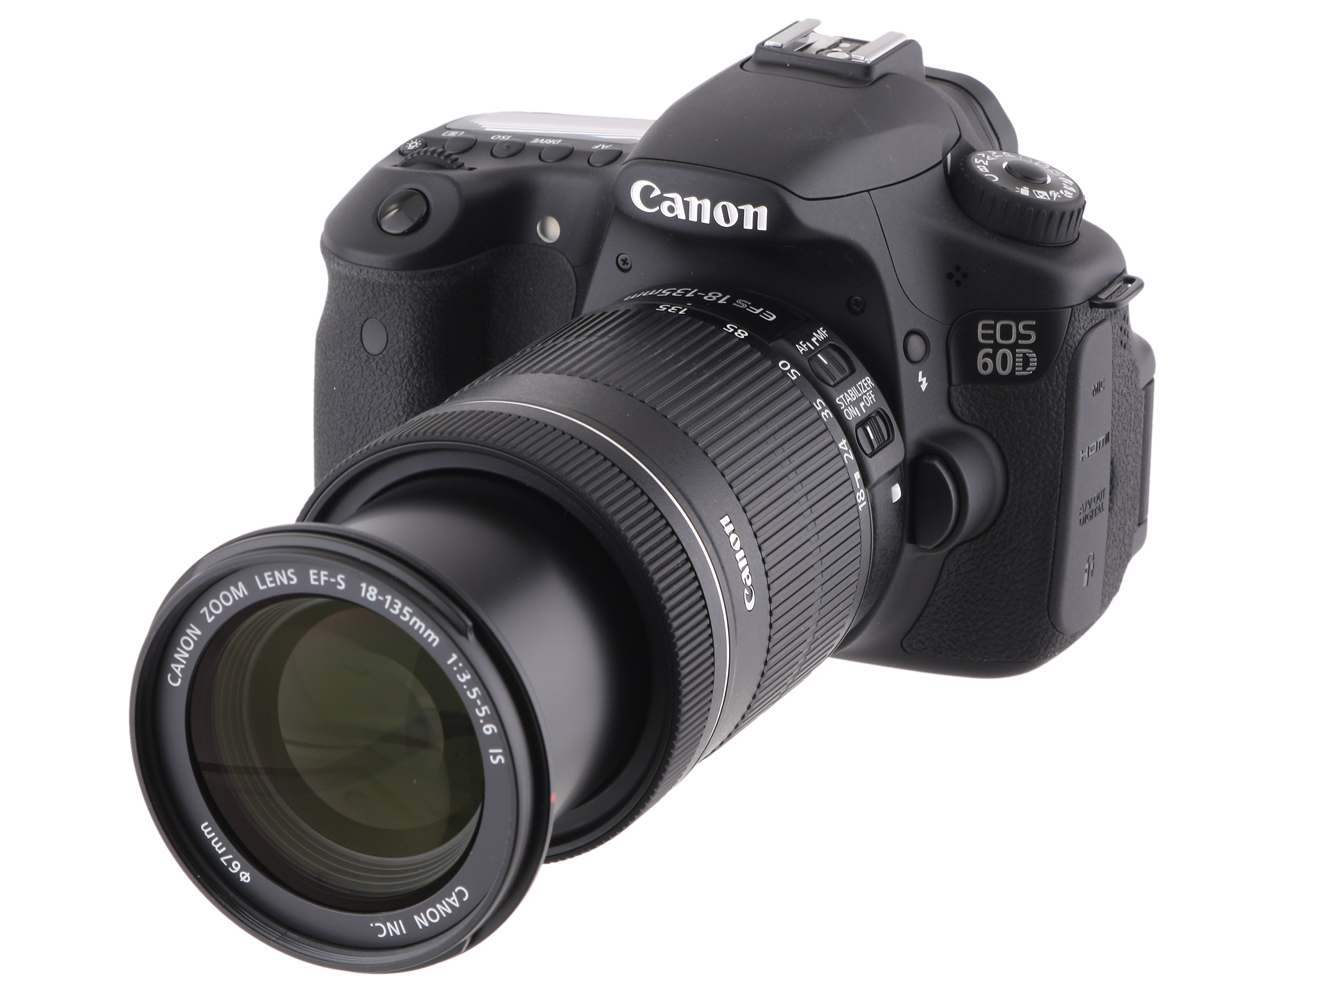 canon eos 60d review cnet. Black Bedroom Furniture Sets. Home Design Ideas